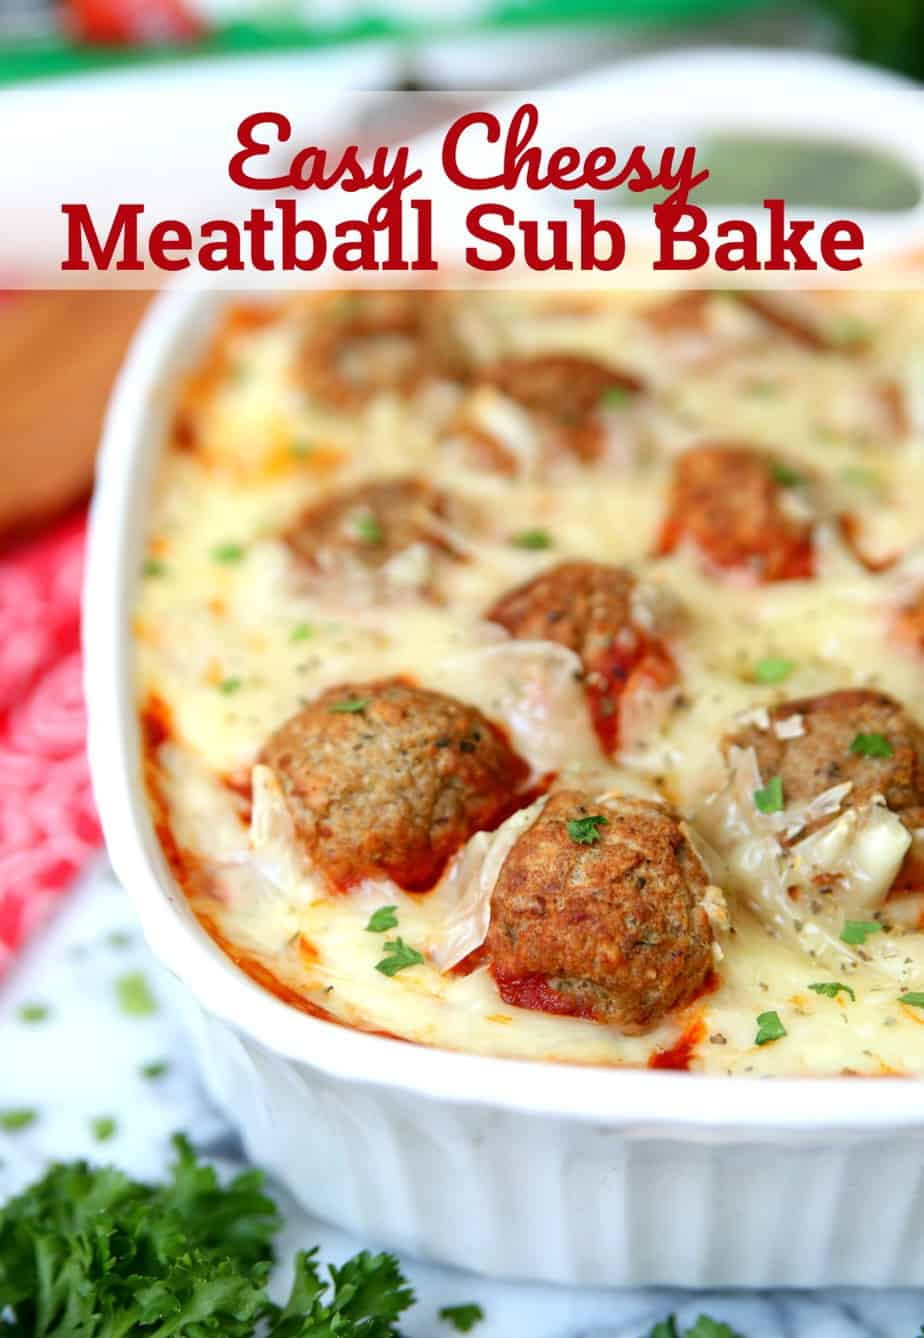 Easy Cheesy Meatball Sub Bake